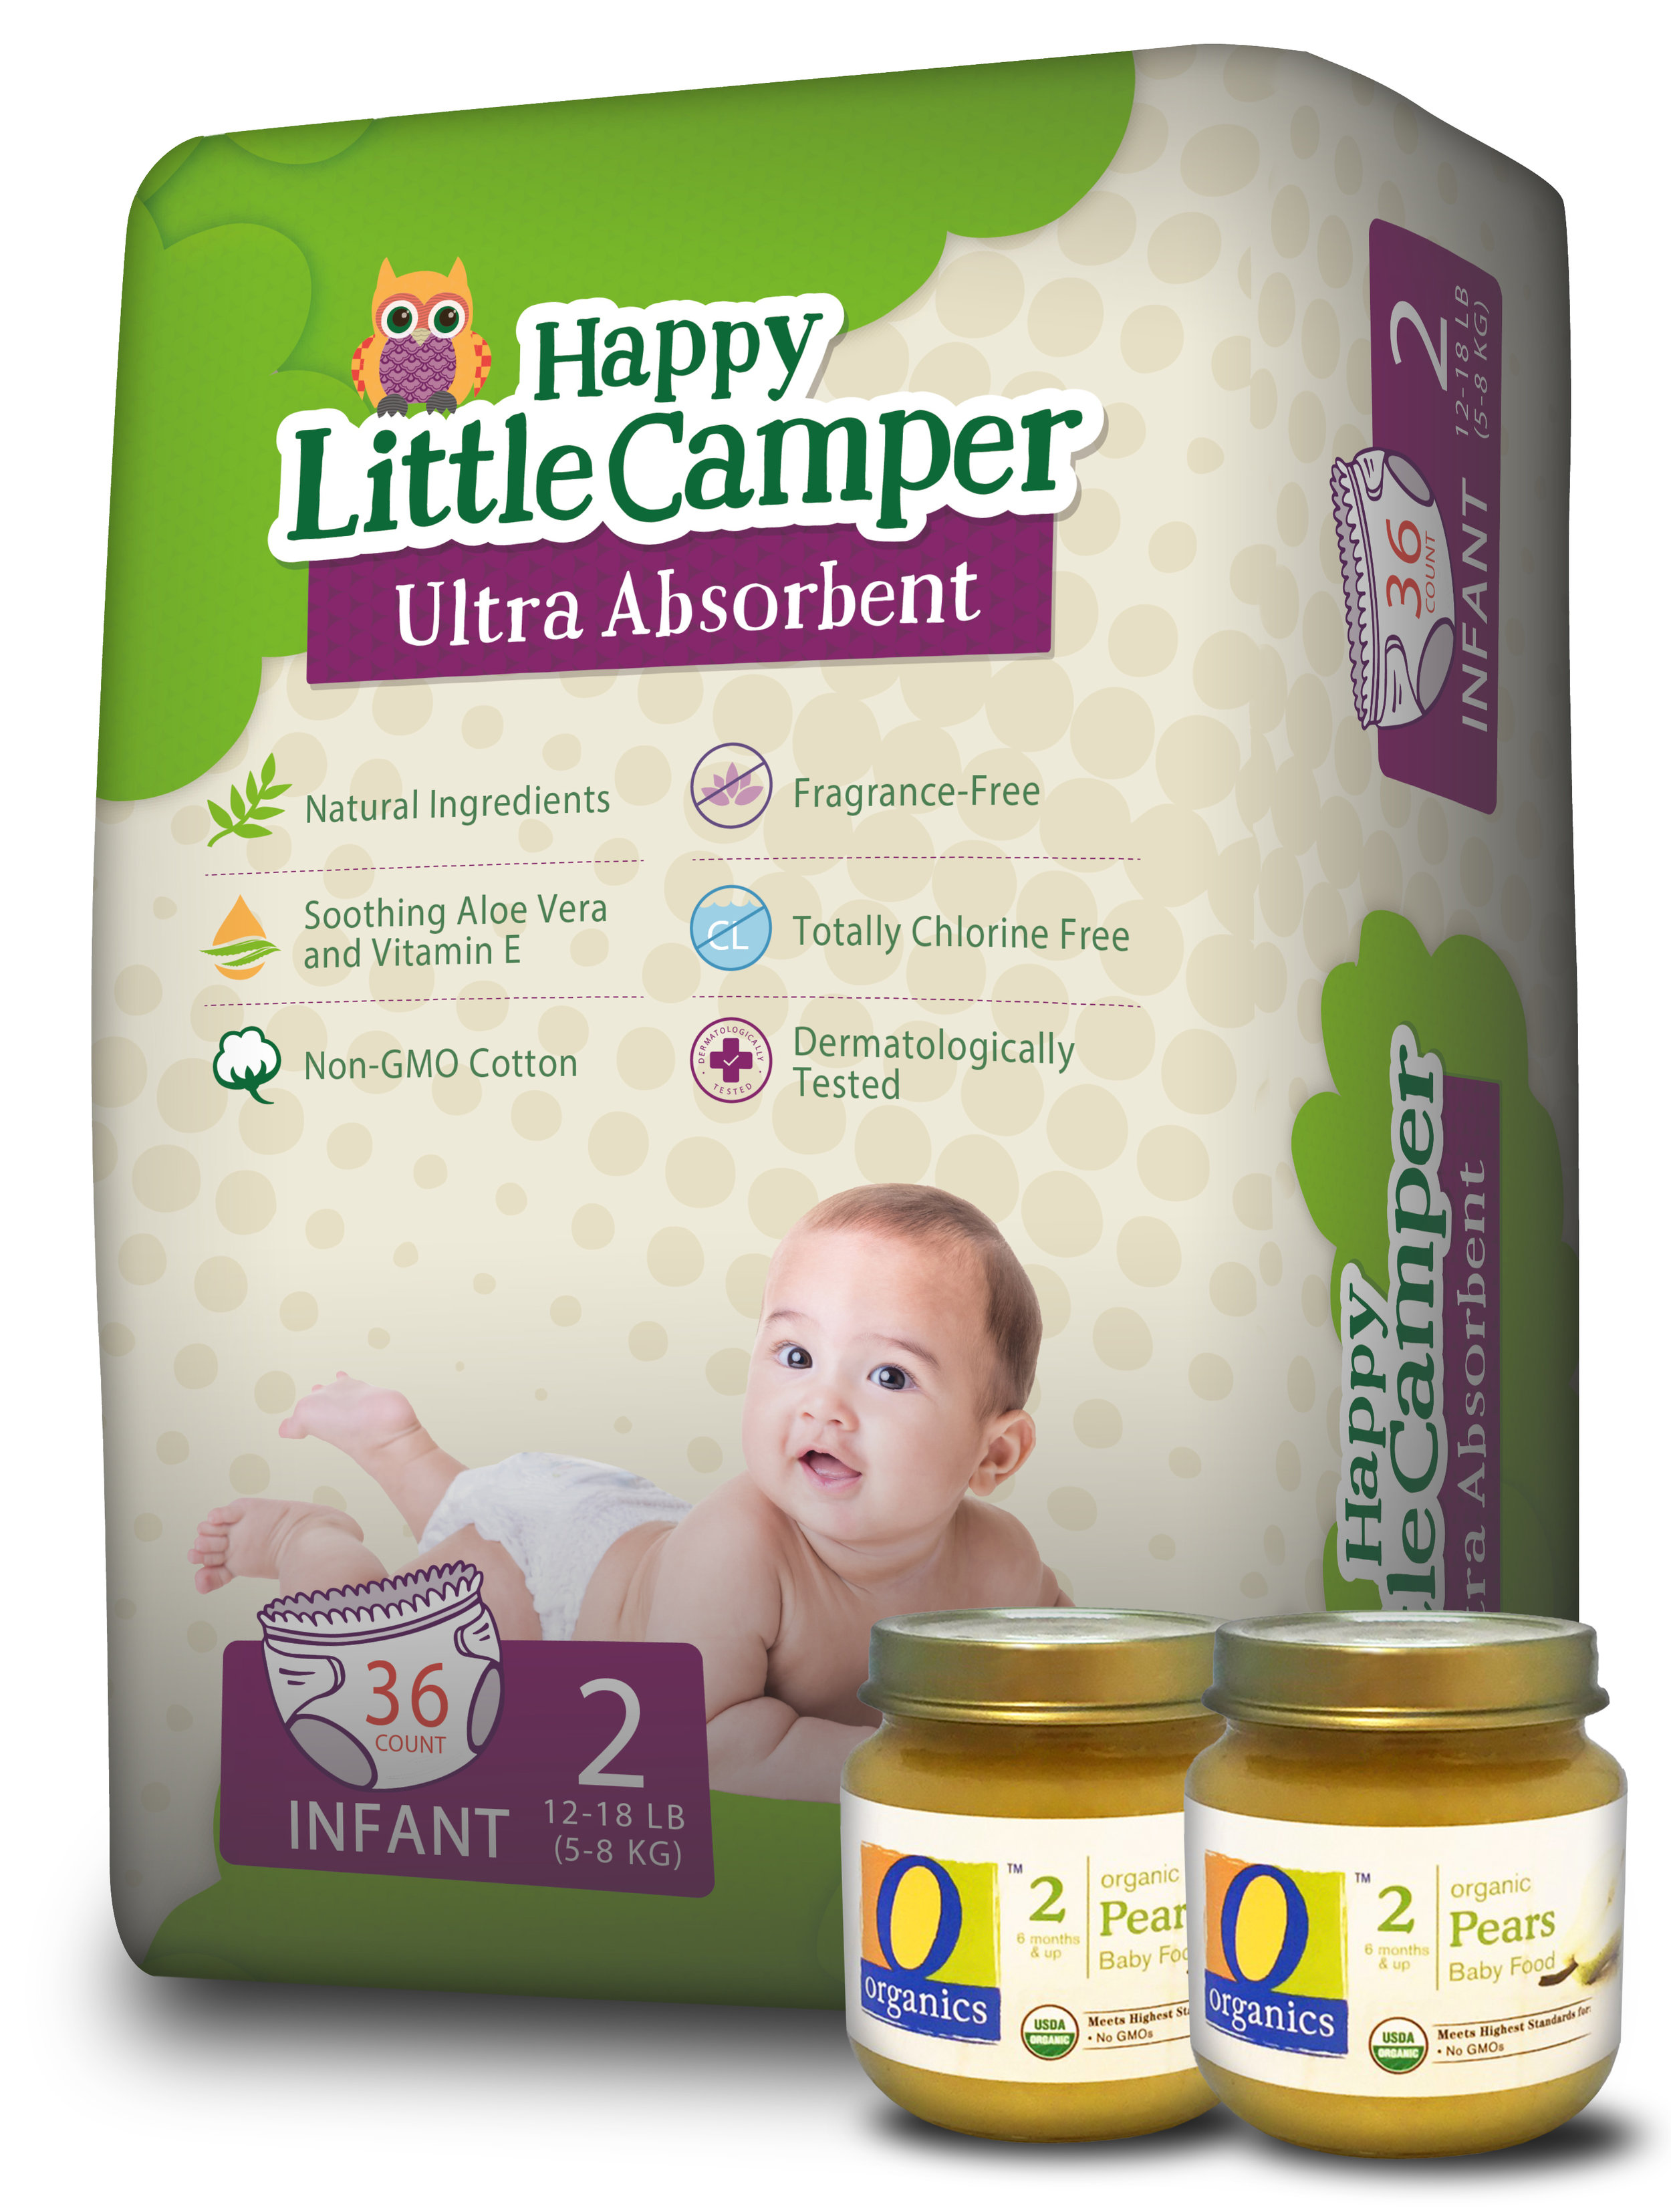 Diaper Drive - FOR OUR COMMUNITY PARTNERSFor every pack of diapers donated between August 1 –31, CTK will buy a case of baby food to donate to the Bellingham Food Bank.We encourage everyone to participate at the level you can afford. Here are some options:Walmart: $8-10/packTarget: $18-35/packCostco: $40-50/packAmazon:(wide variety of prices)For your convenience, you can deliver directly to the church:4173 MeridianSt, B'ham 98226